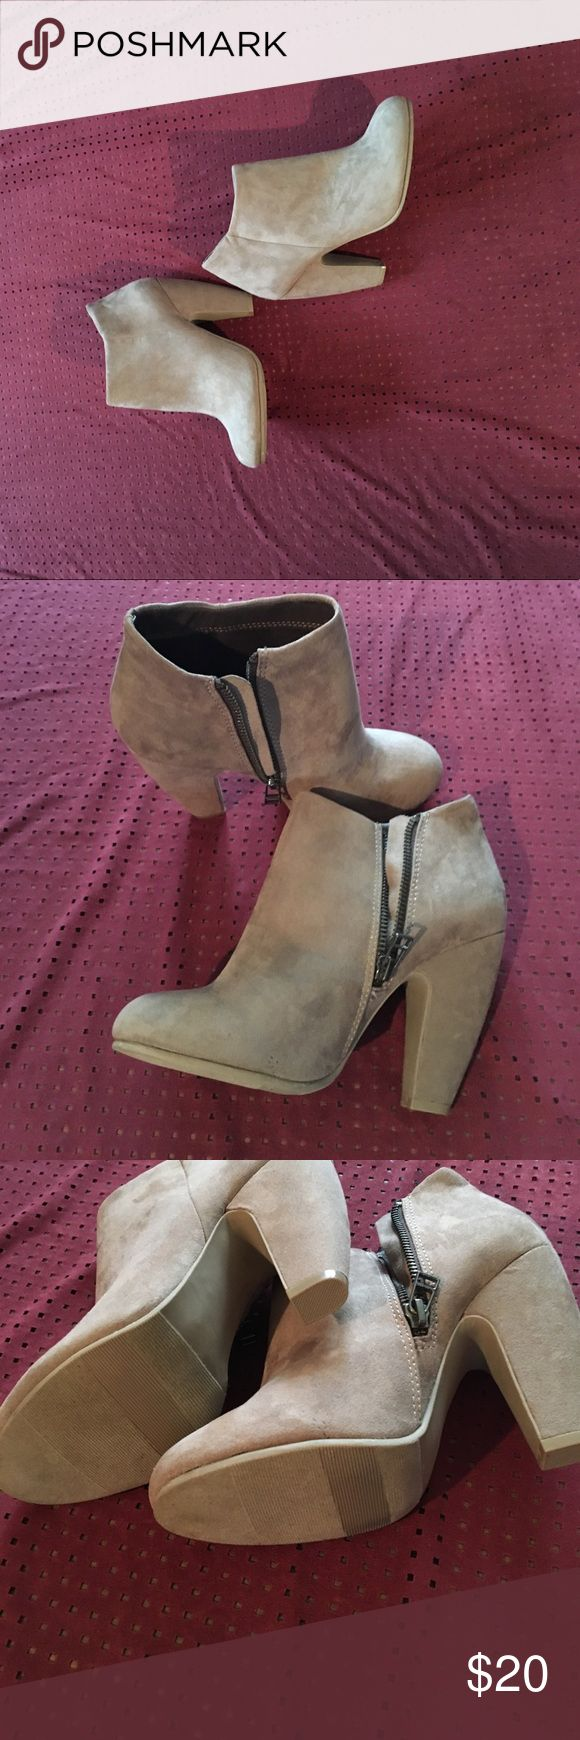 Tan ankle boots by Candies Nwot zipper on side cute boots to wear with skinny jeans dresses or skirts candies Shoes Heeled Boots